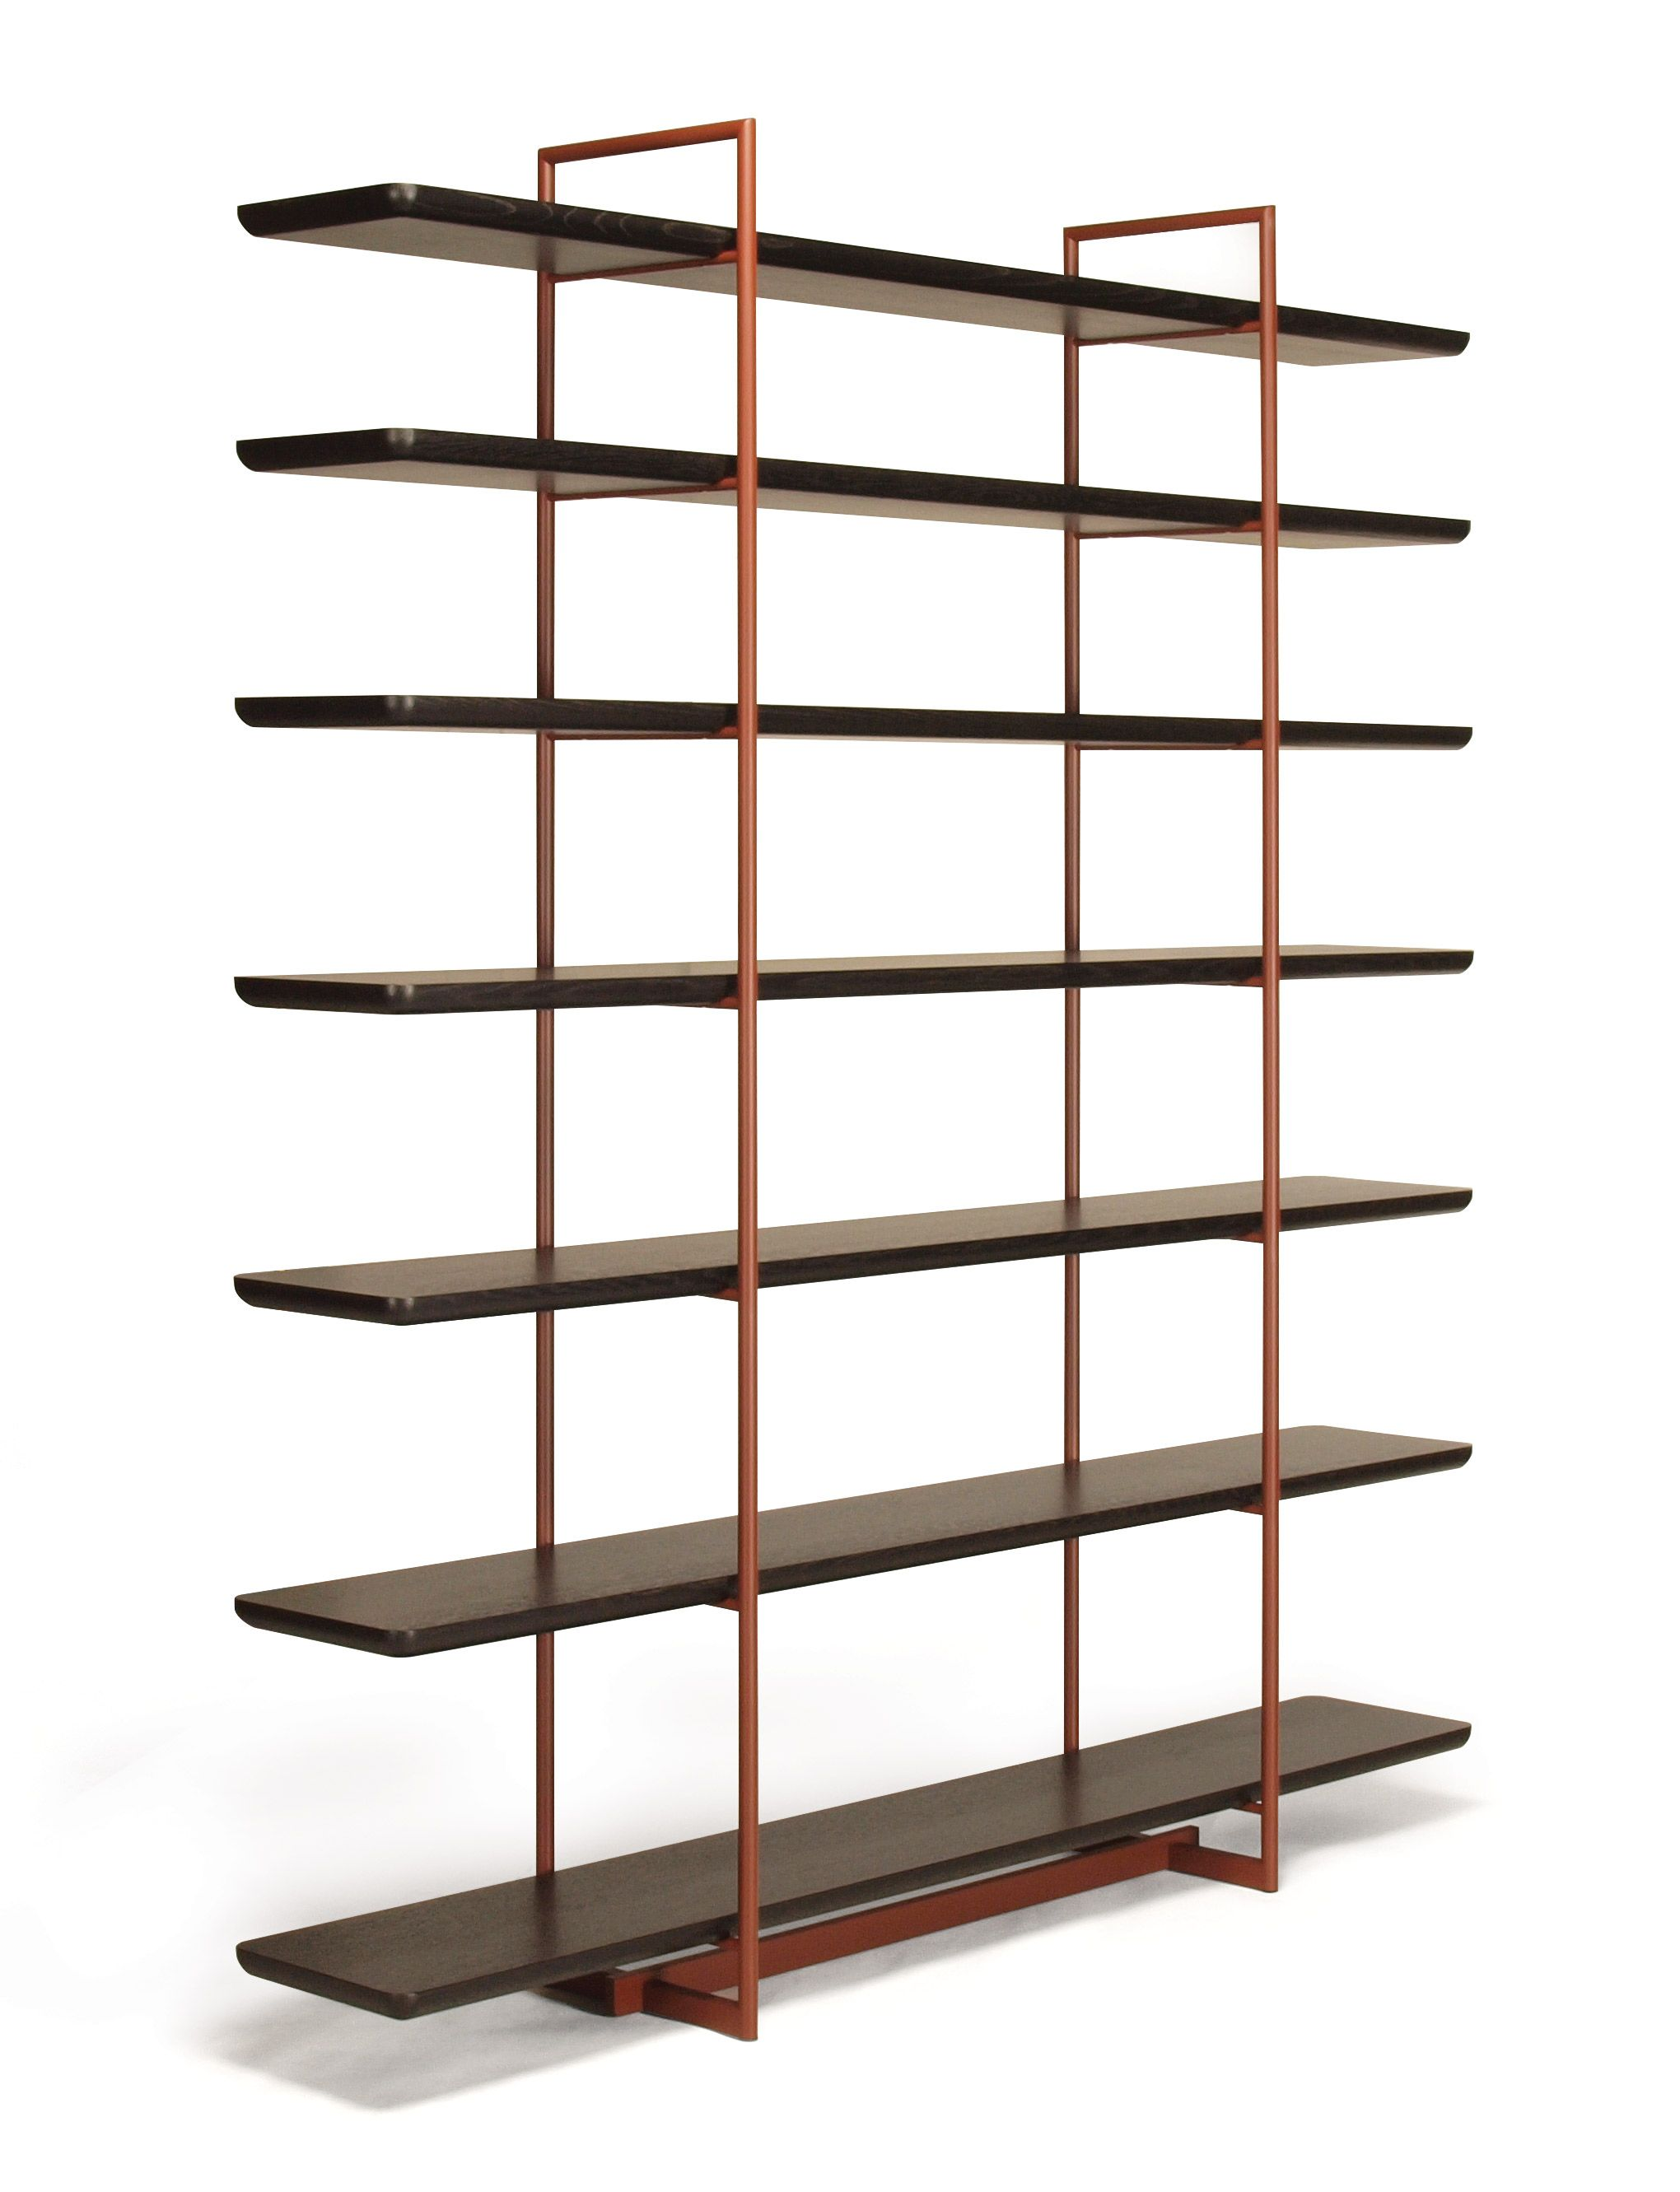 office shelving systems. ALTAI SHELVING - Designer Office Shelving Systems From Skram ✓ All Information High-resolution Images CADs Catalogues Contact.